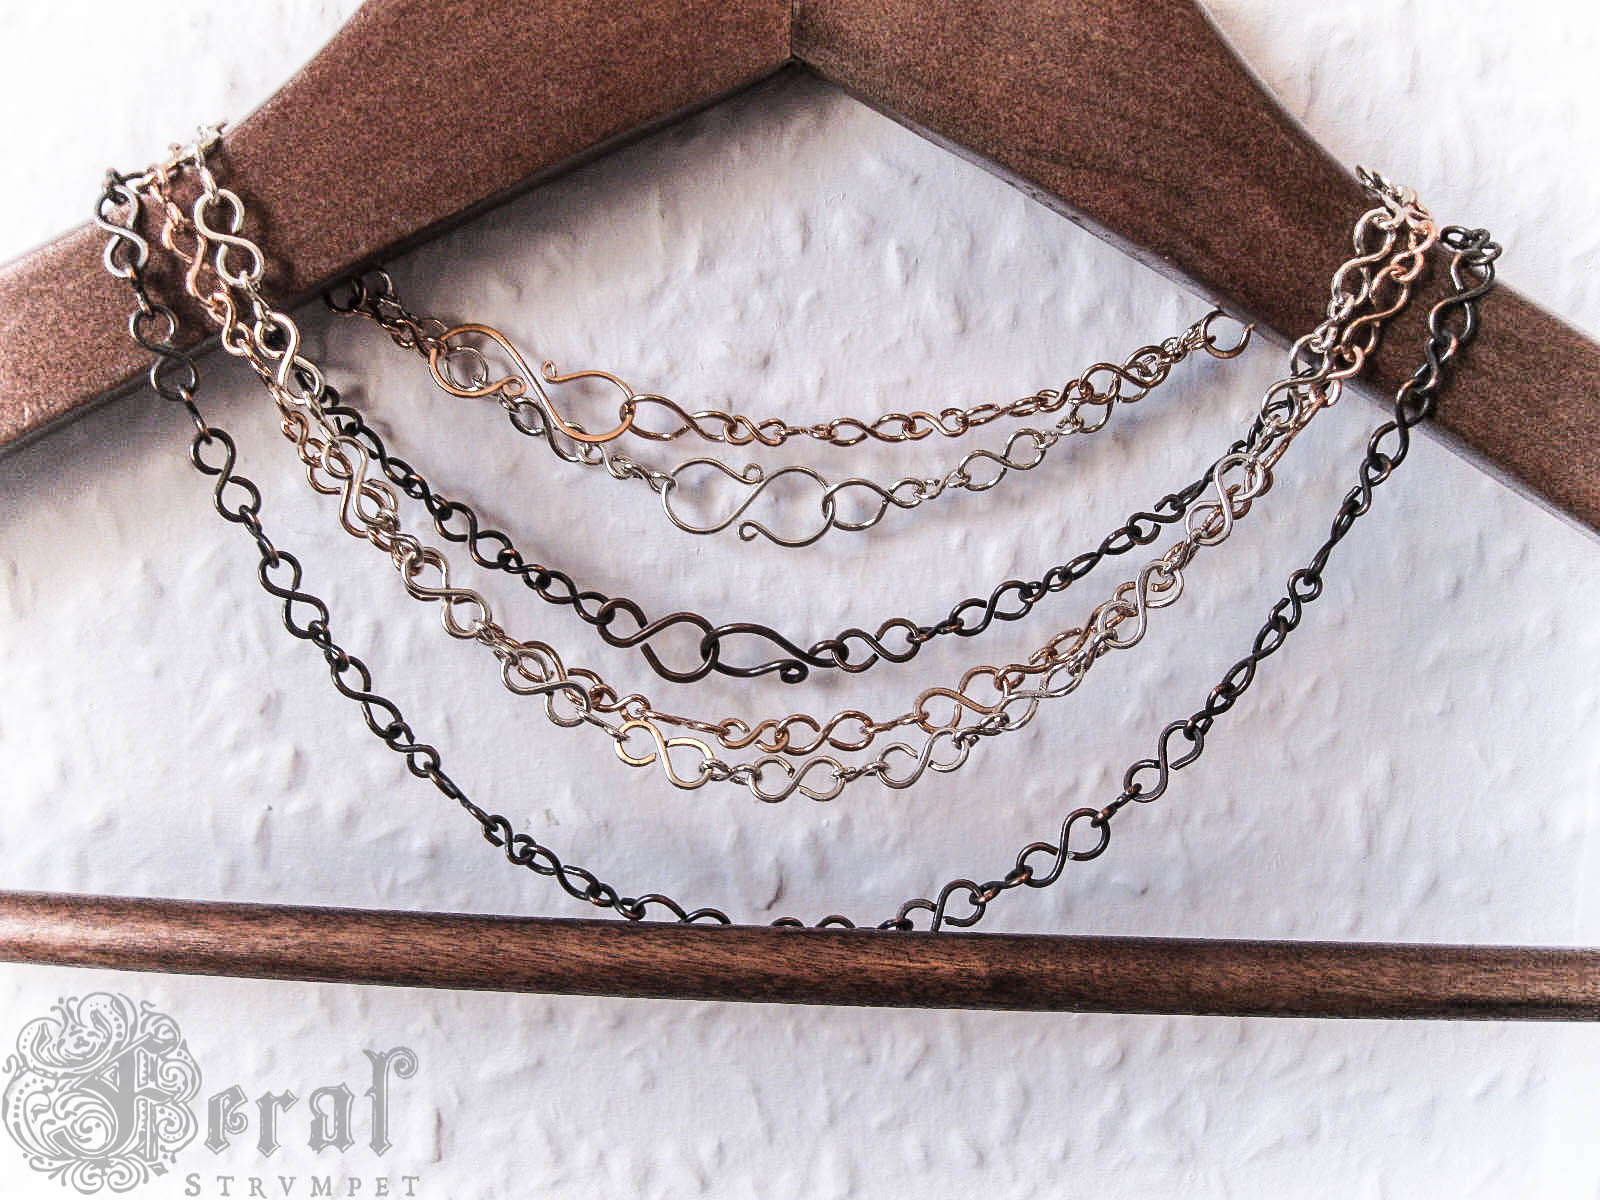 on product necklace minimalist chain infinity chains jewelry sterling all day original silver mother s